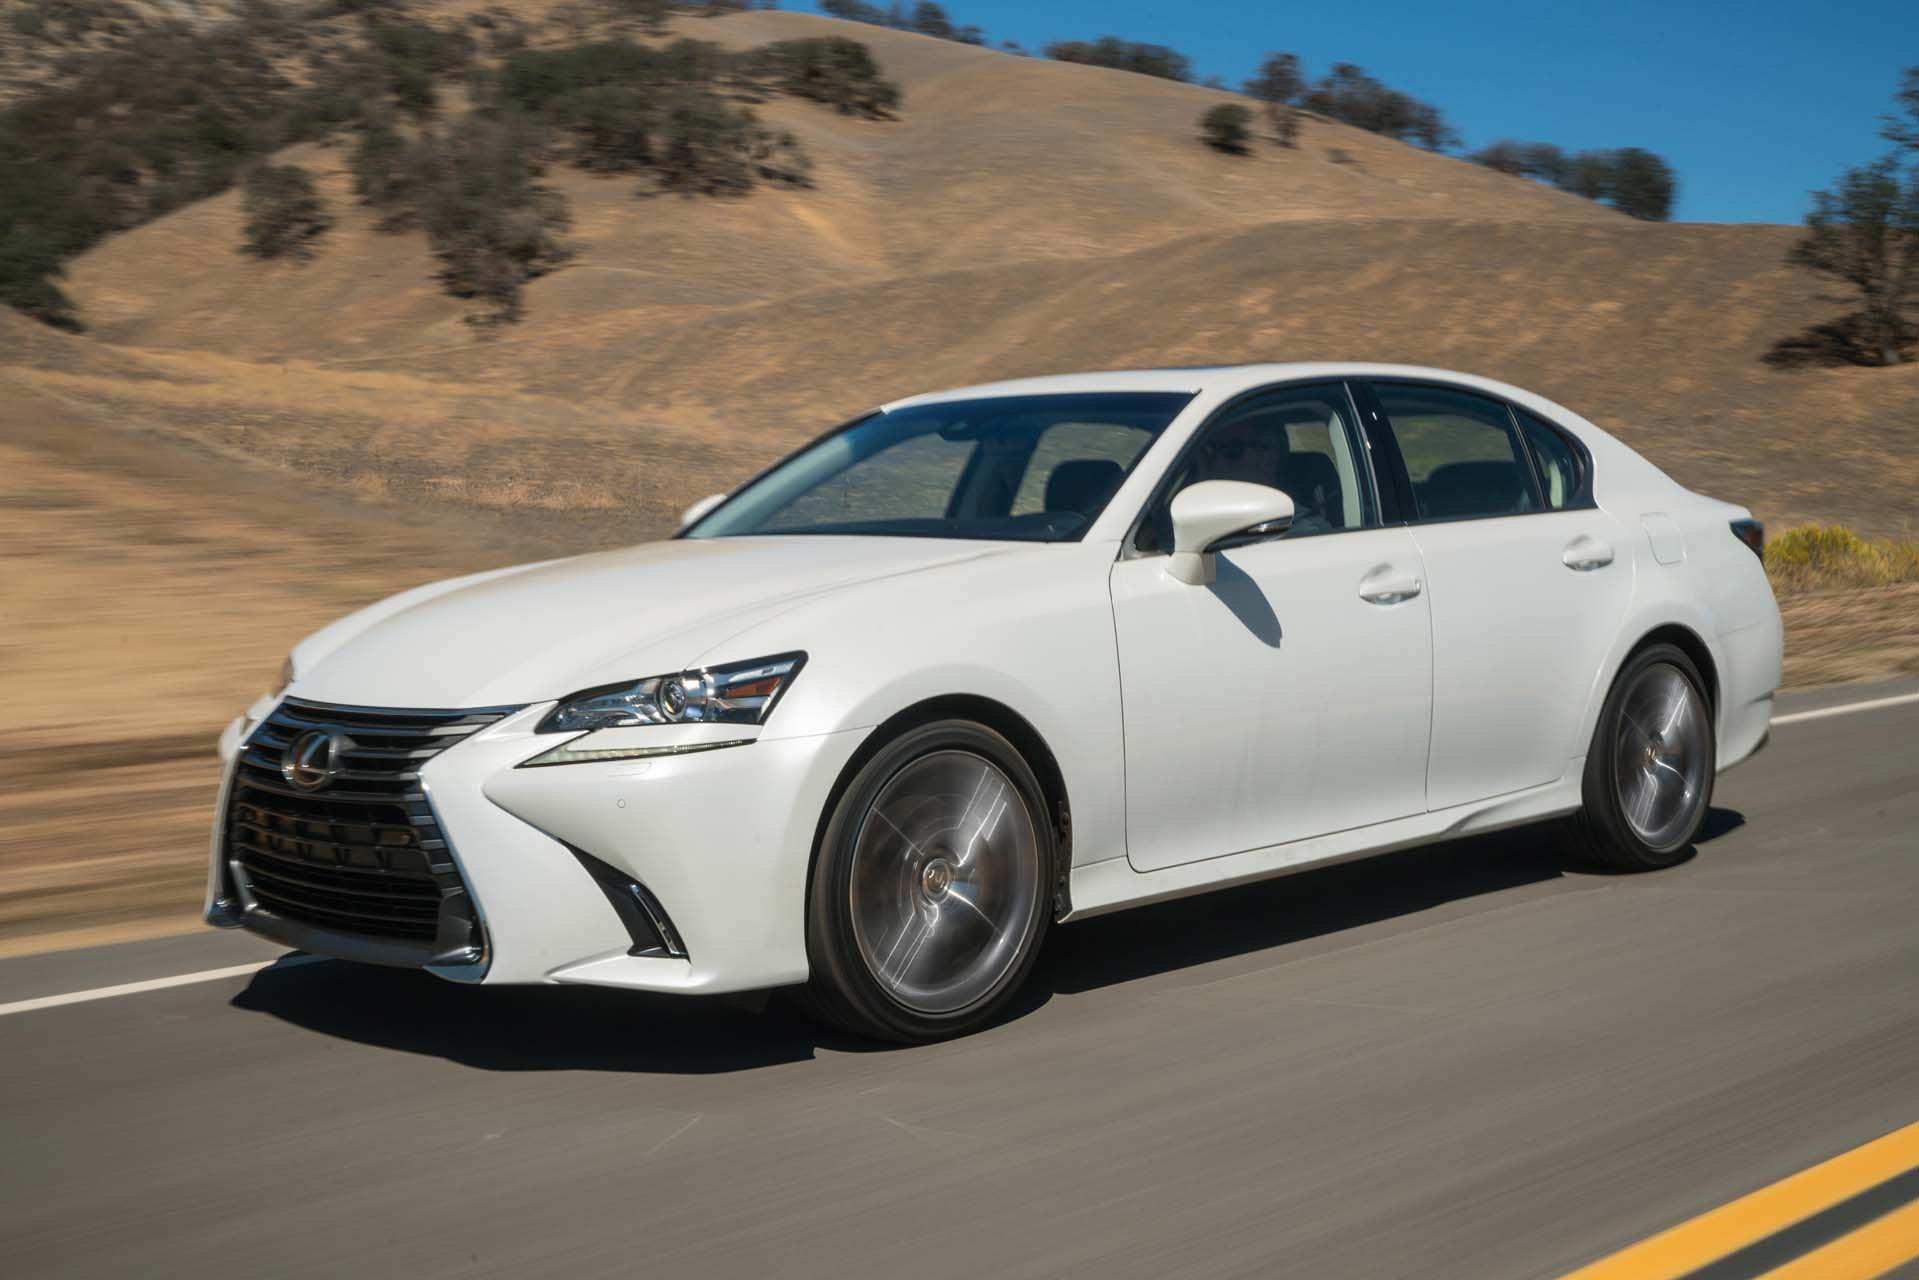 63 Gallery of The Lexus Es 2019 Weight Review And Specs Model by The Lexus Es 2019 Weight Review And Specs